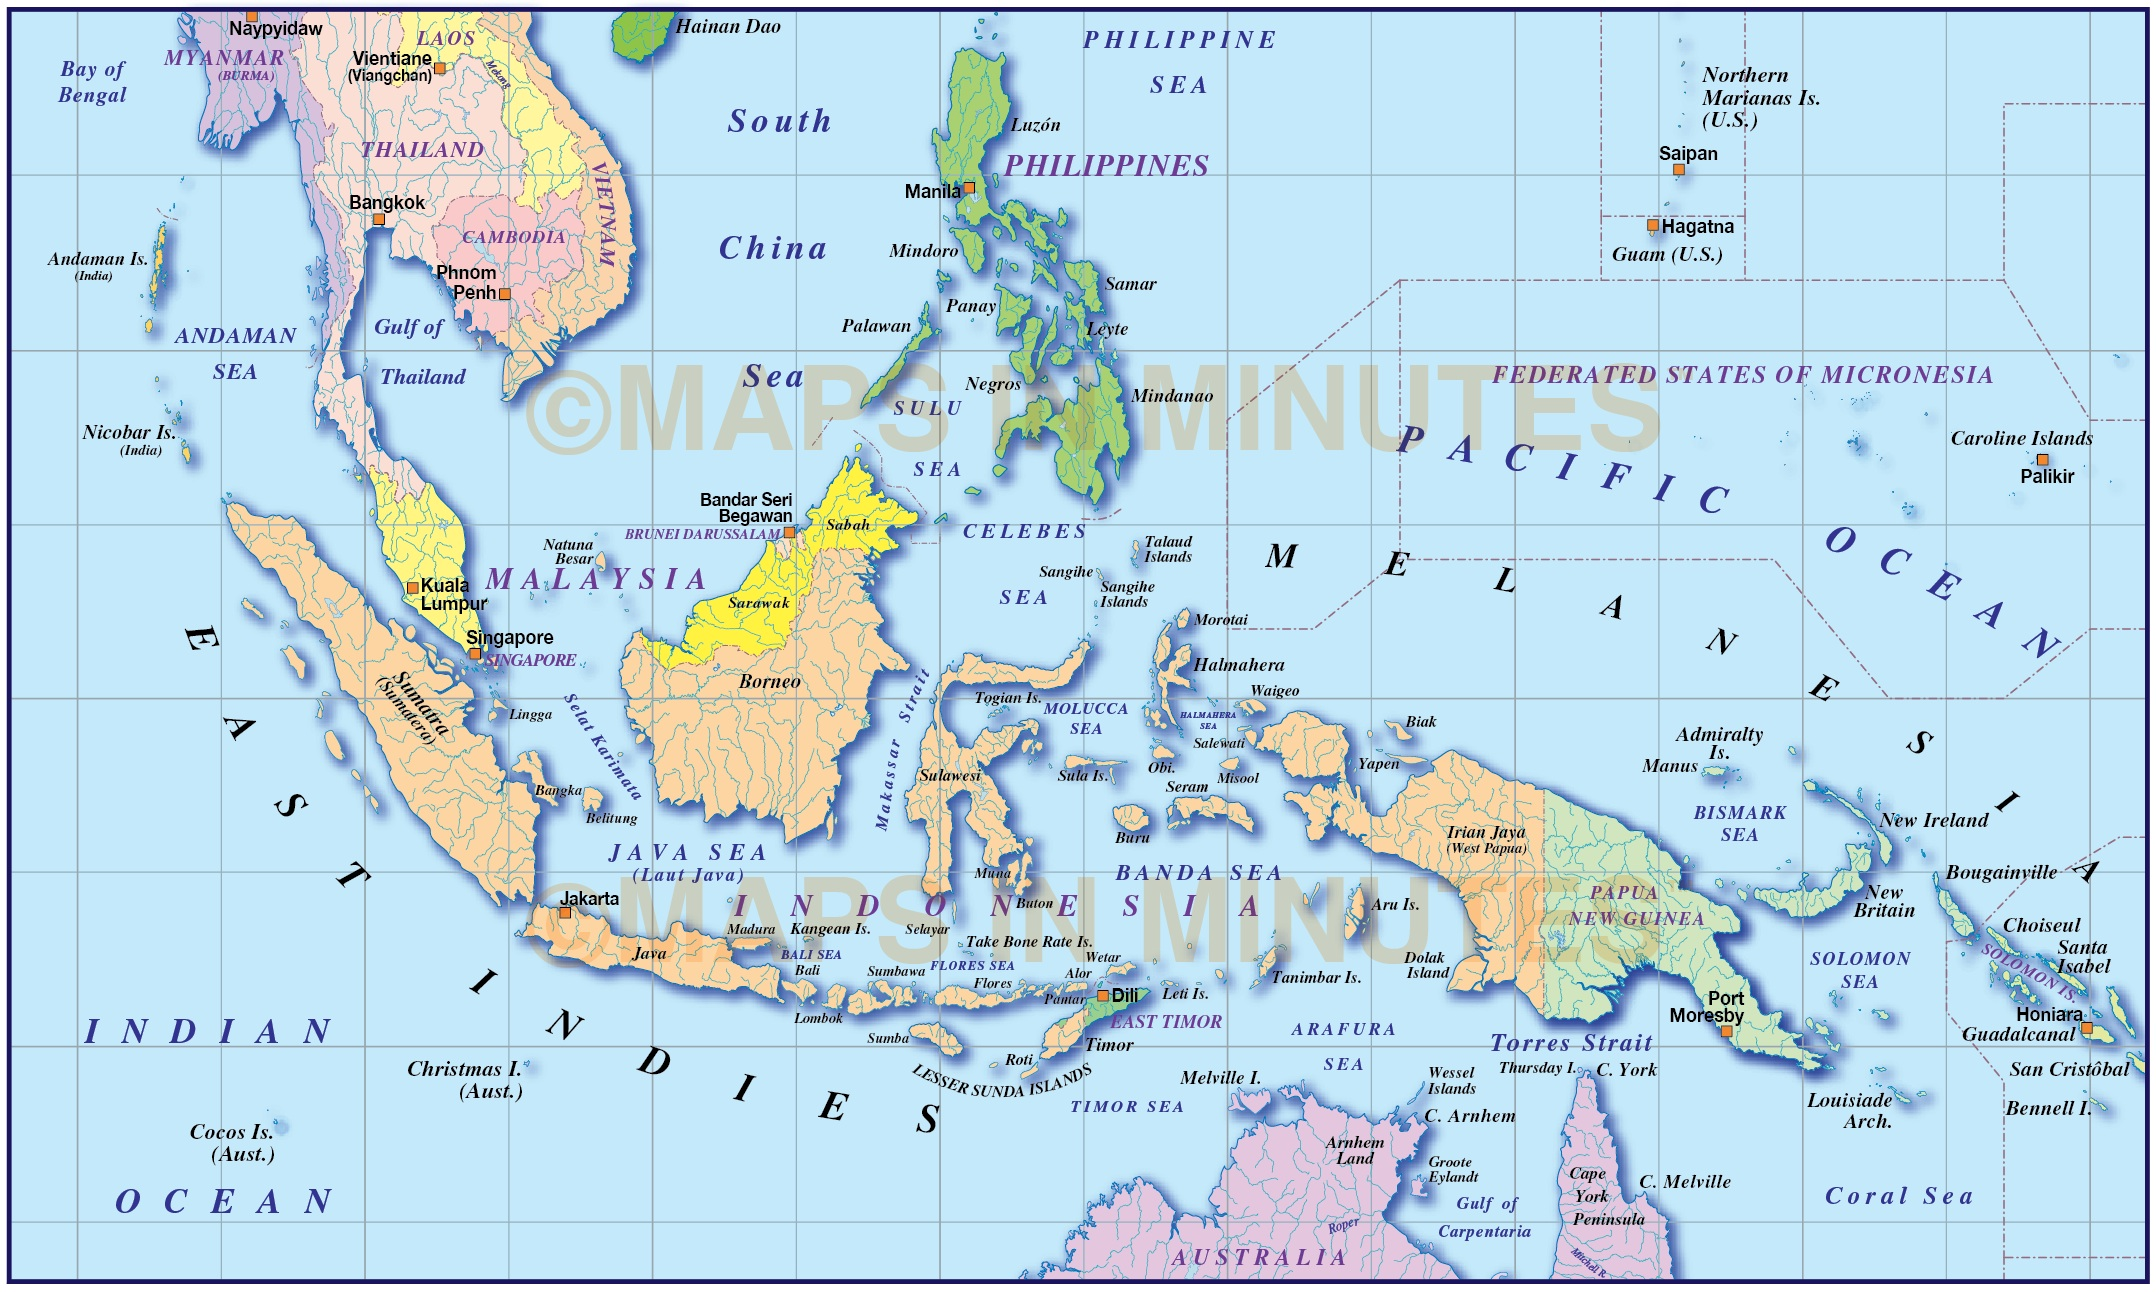 Maps: Vector Malaysia-Indonesia Simple Political Map @10M Scale